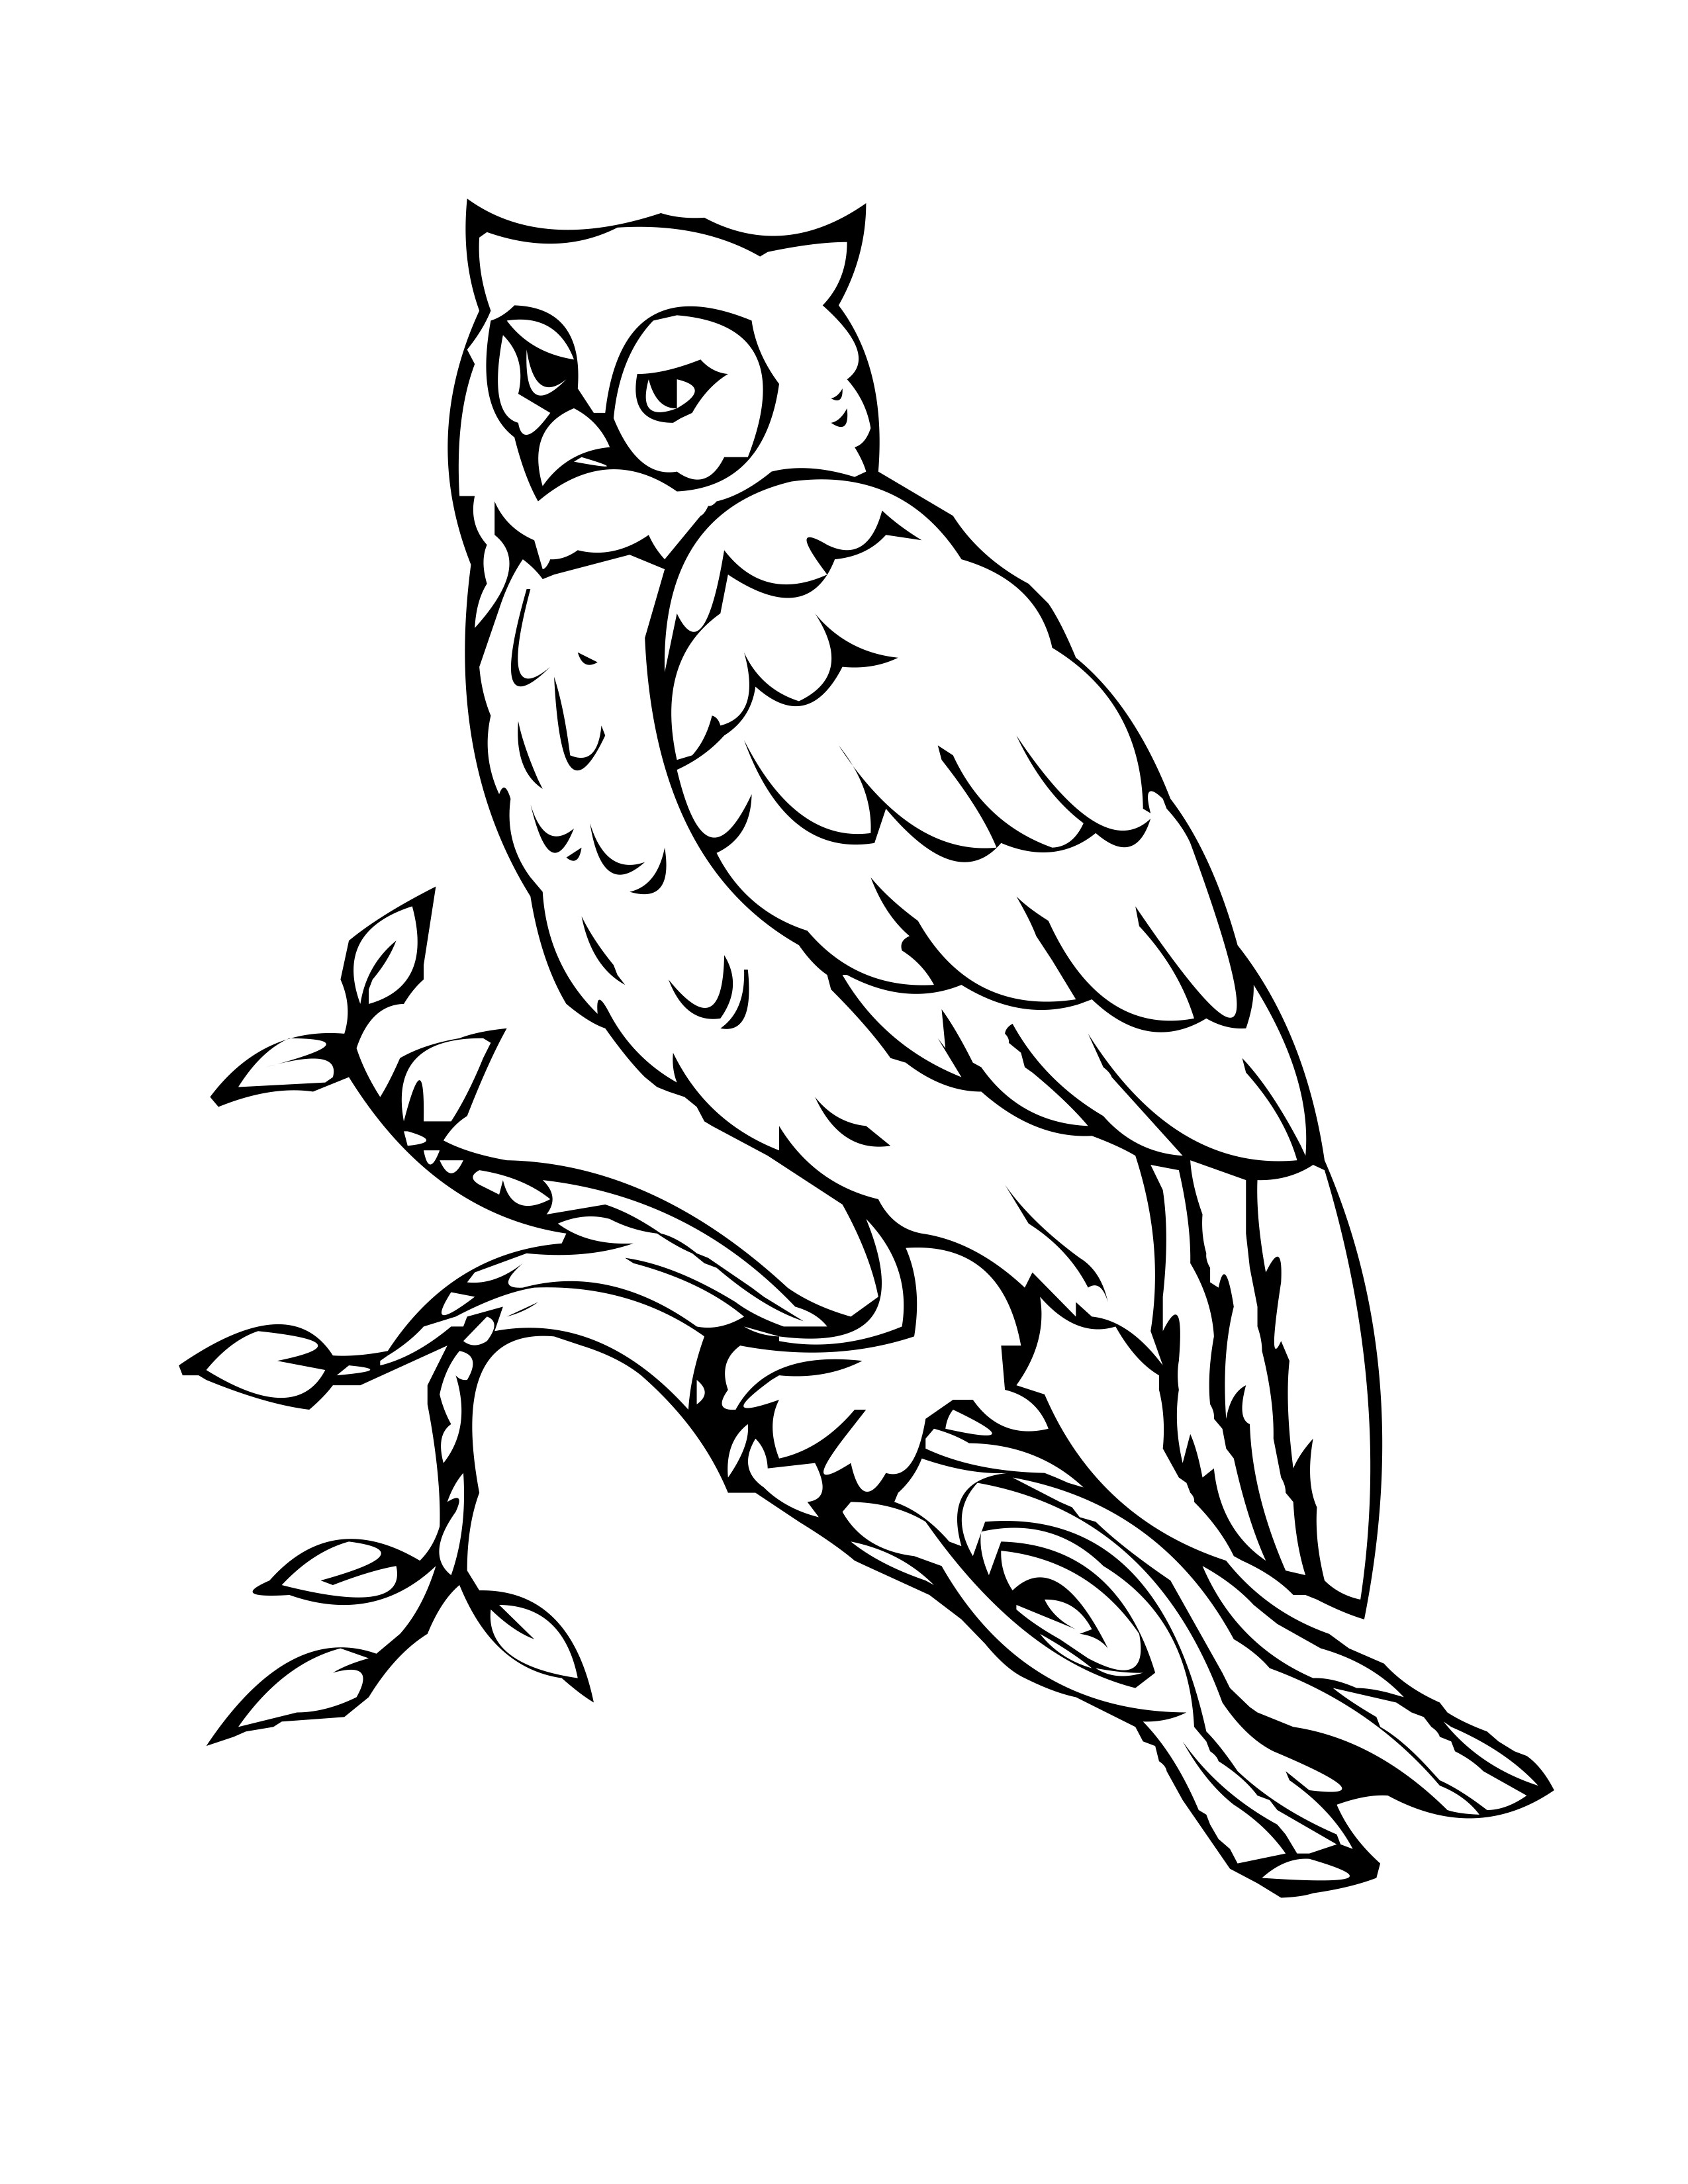 coloring pages of birds birds for kids birds kids coloring pages coloring birds pages of